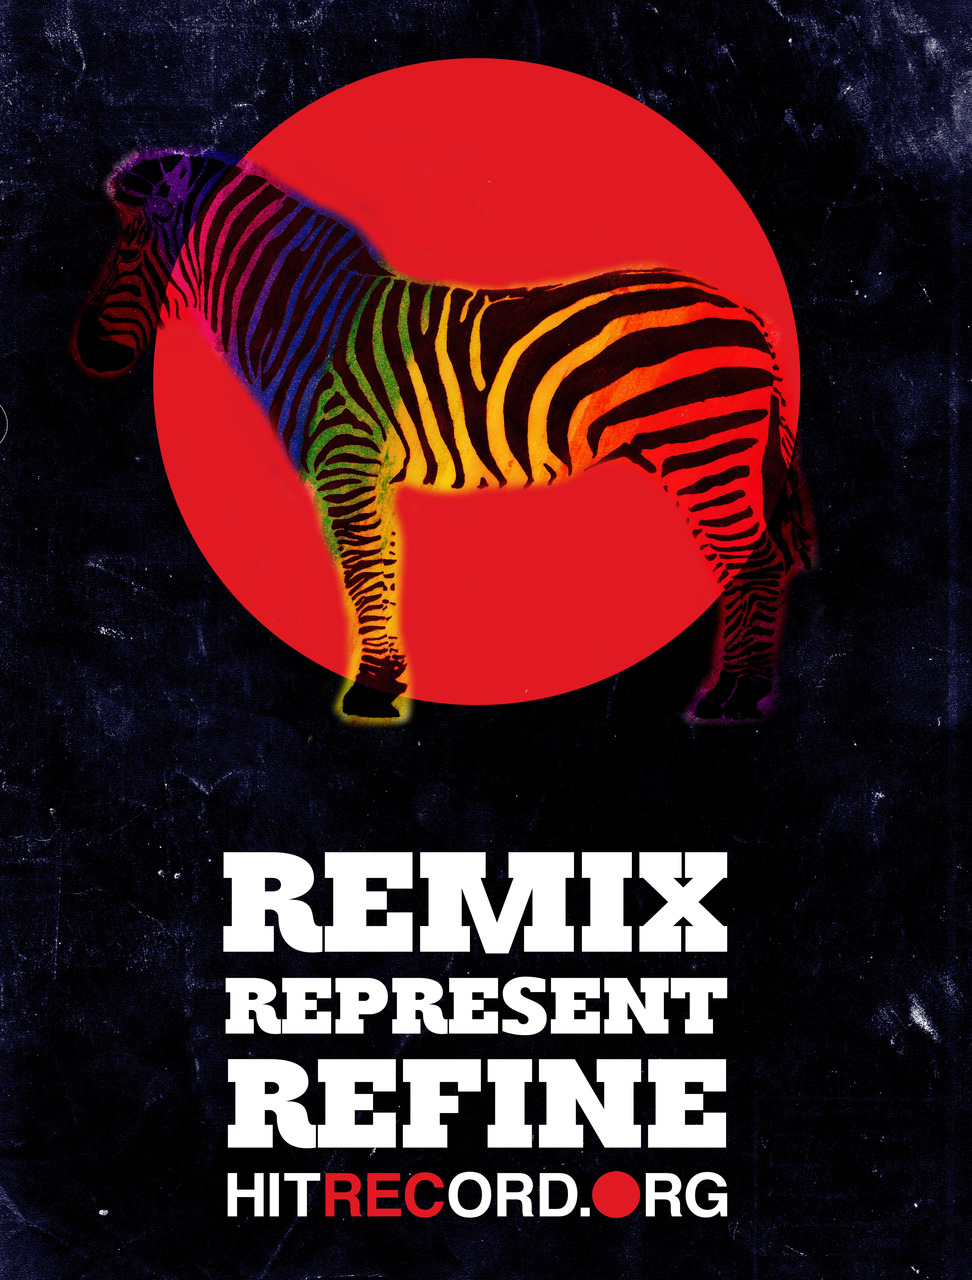 Poster design I came up with for hitRECord last night.    Remix. Represent. Refine. hitRECord.